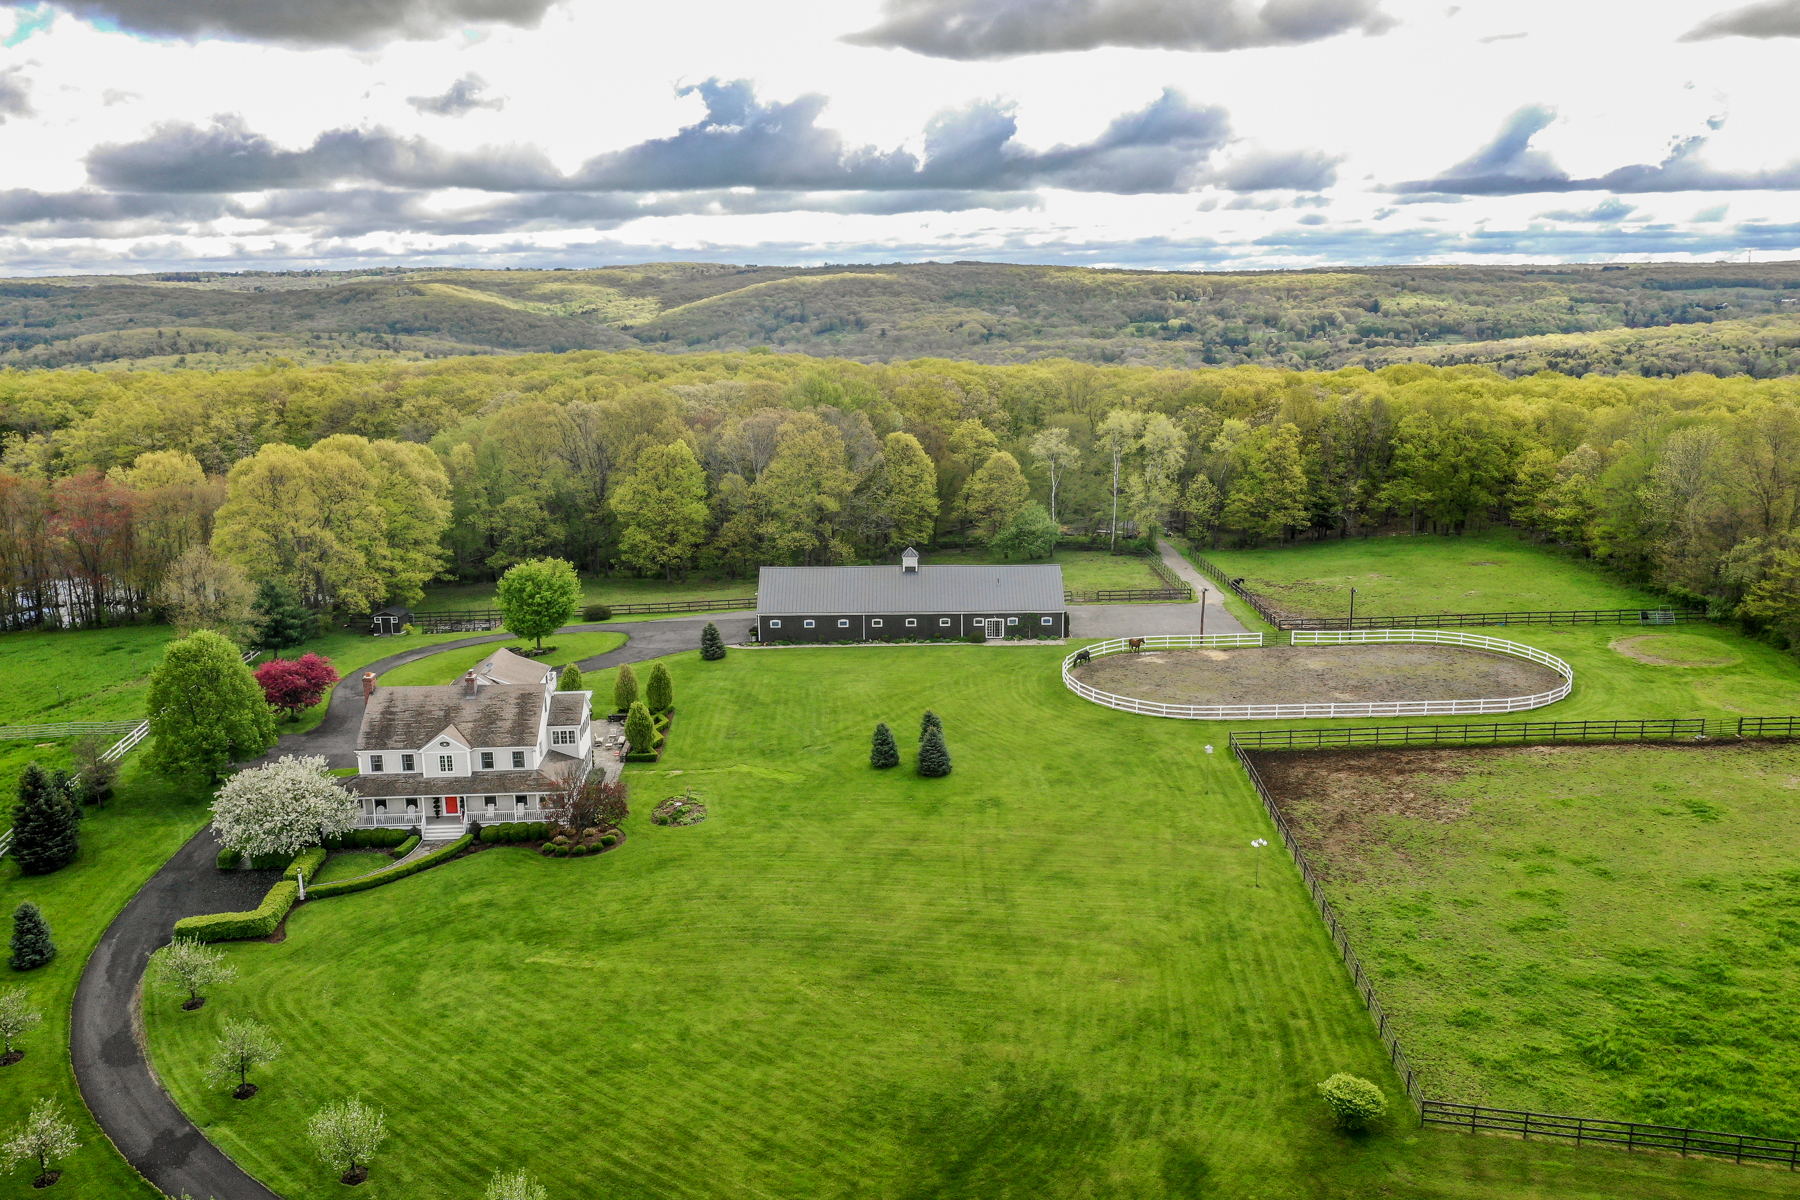 Single Family Homes for Sale at Bountiful Equestrian Property 2 Beaver Pond Lane Bridgewater, Connecticut 06752 United States